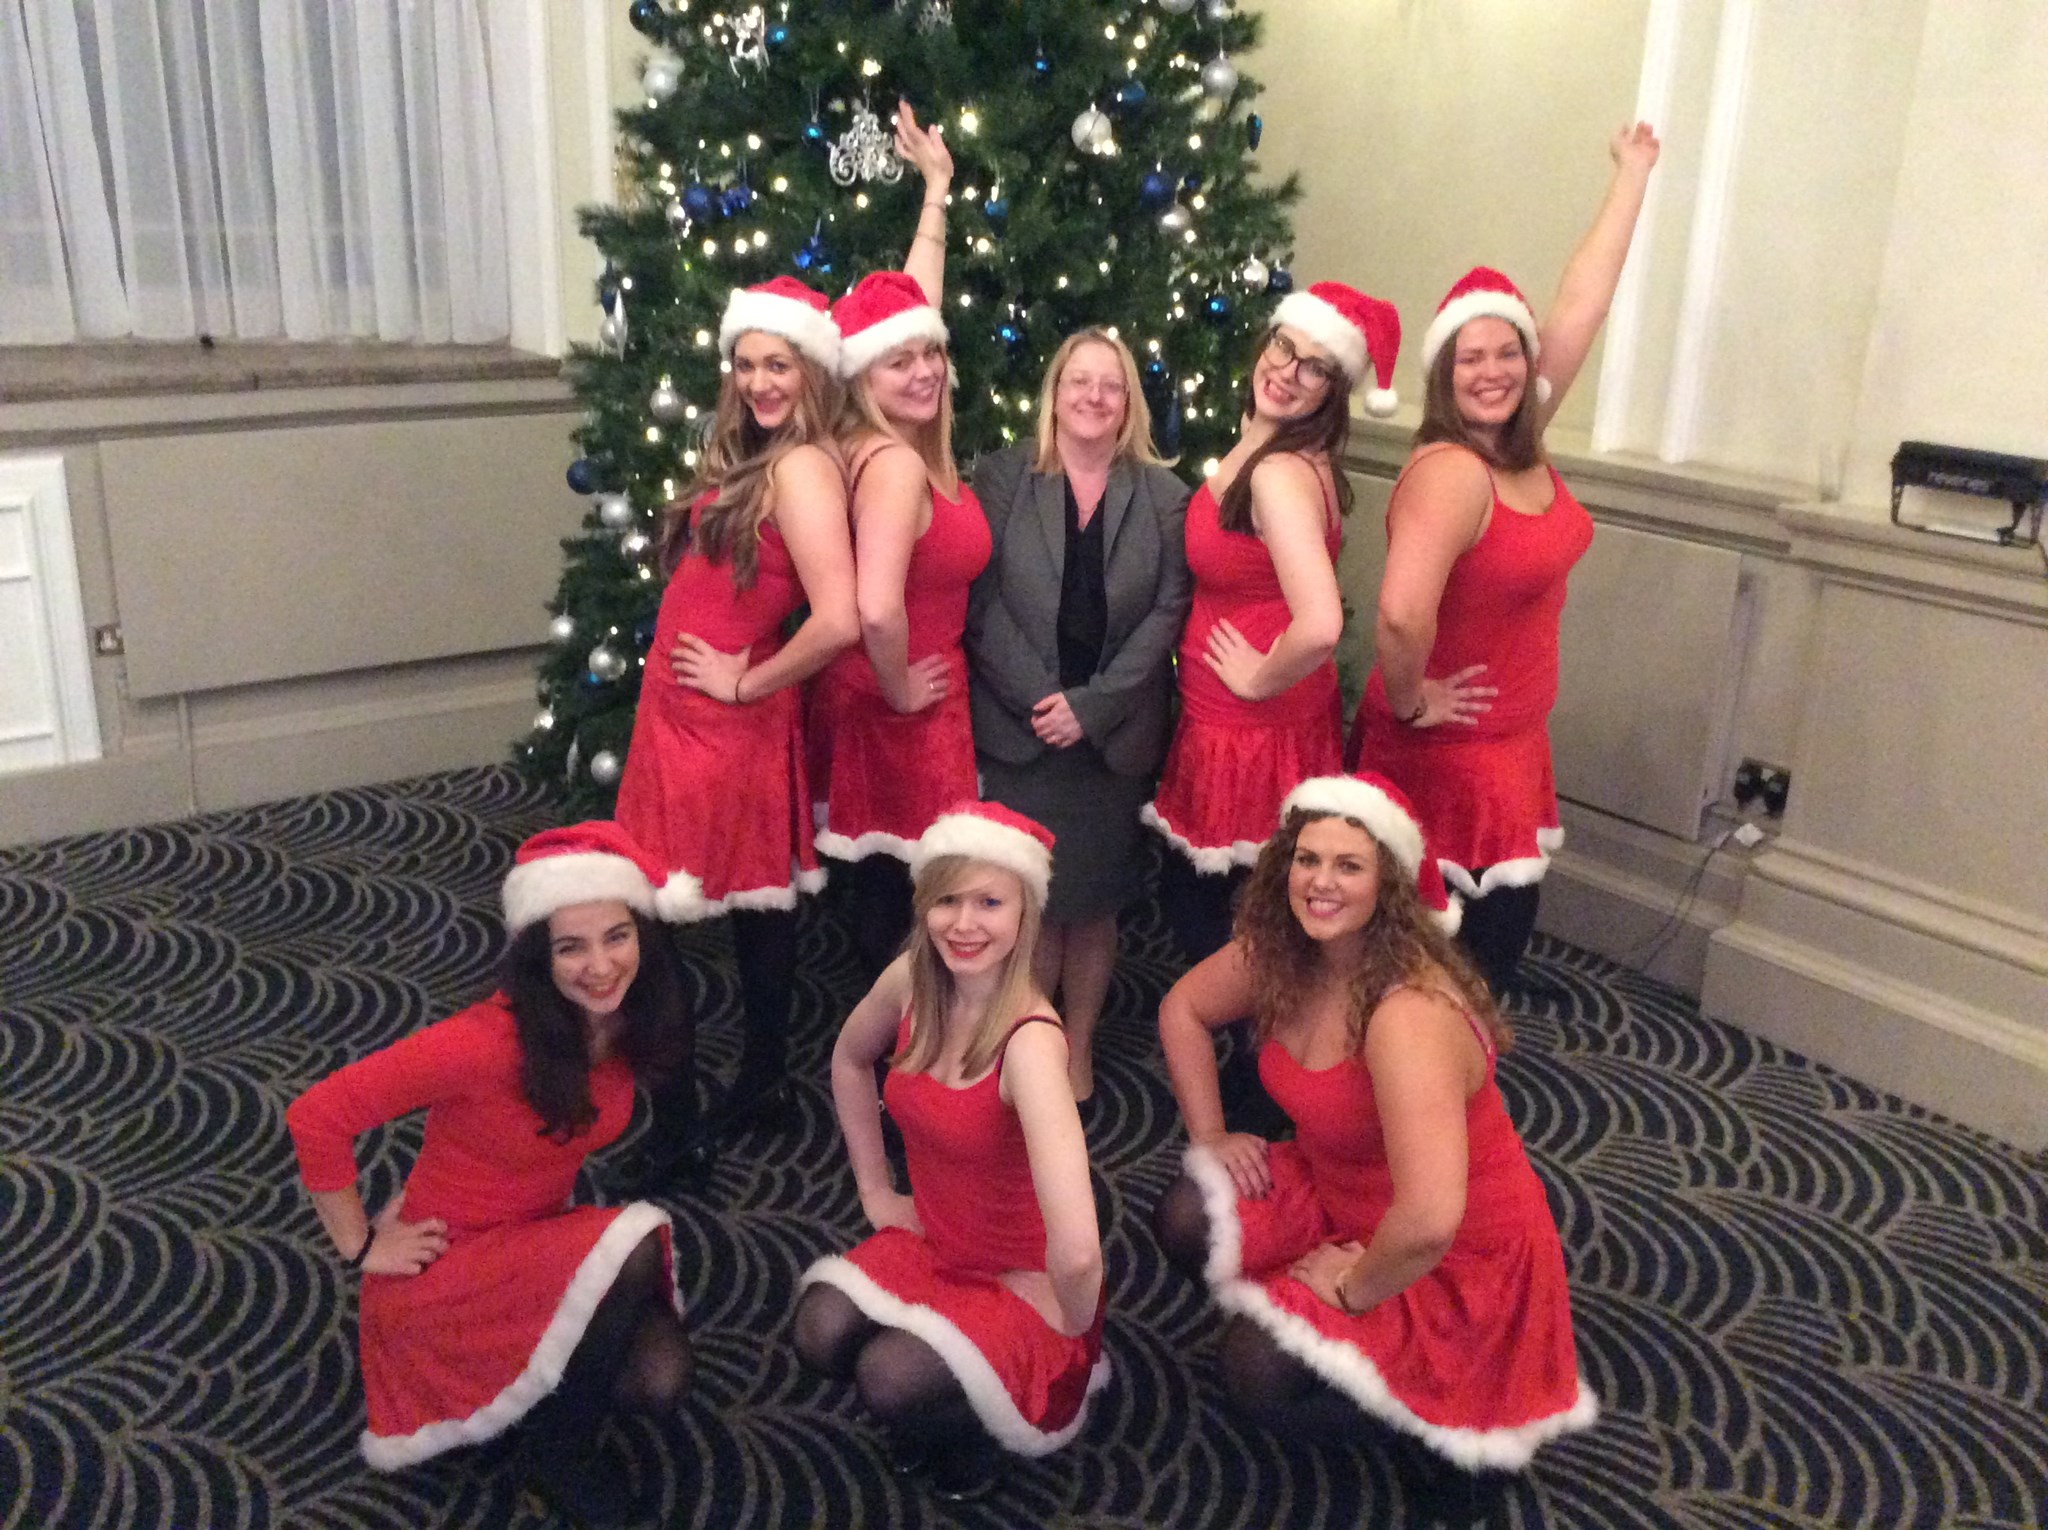 Christmas at The Grand 2015 - Jingle Bell Rock